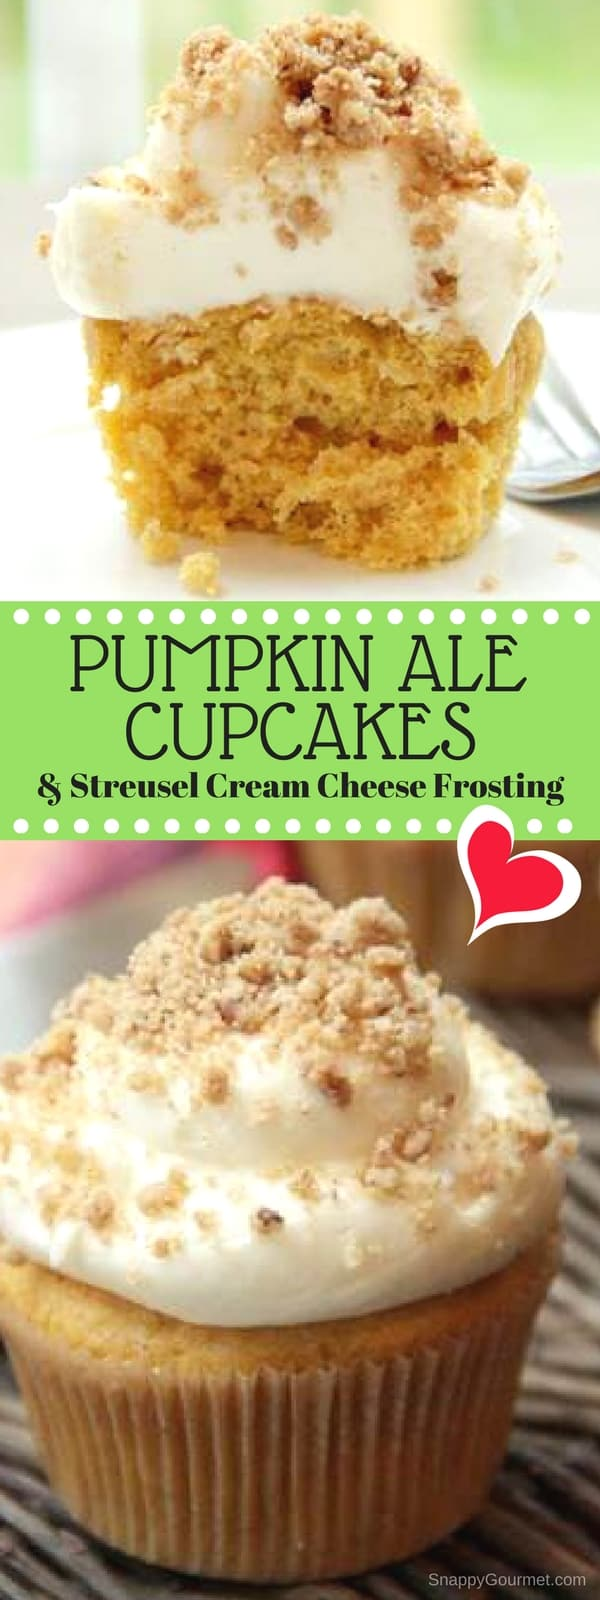 Pumpkin Ale Cupcakes Recipe - easy homemade pumpkin cupcakes with beer and a cream cheese frosting and streusel topping!